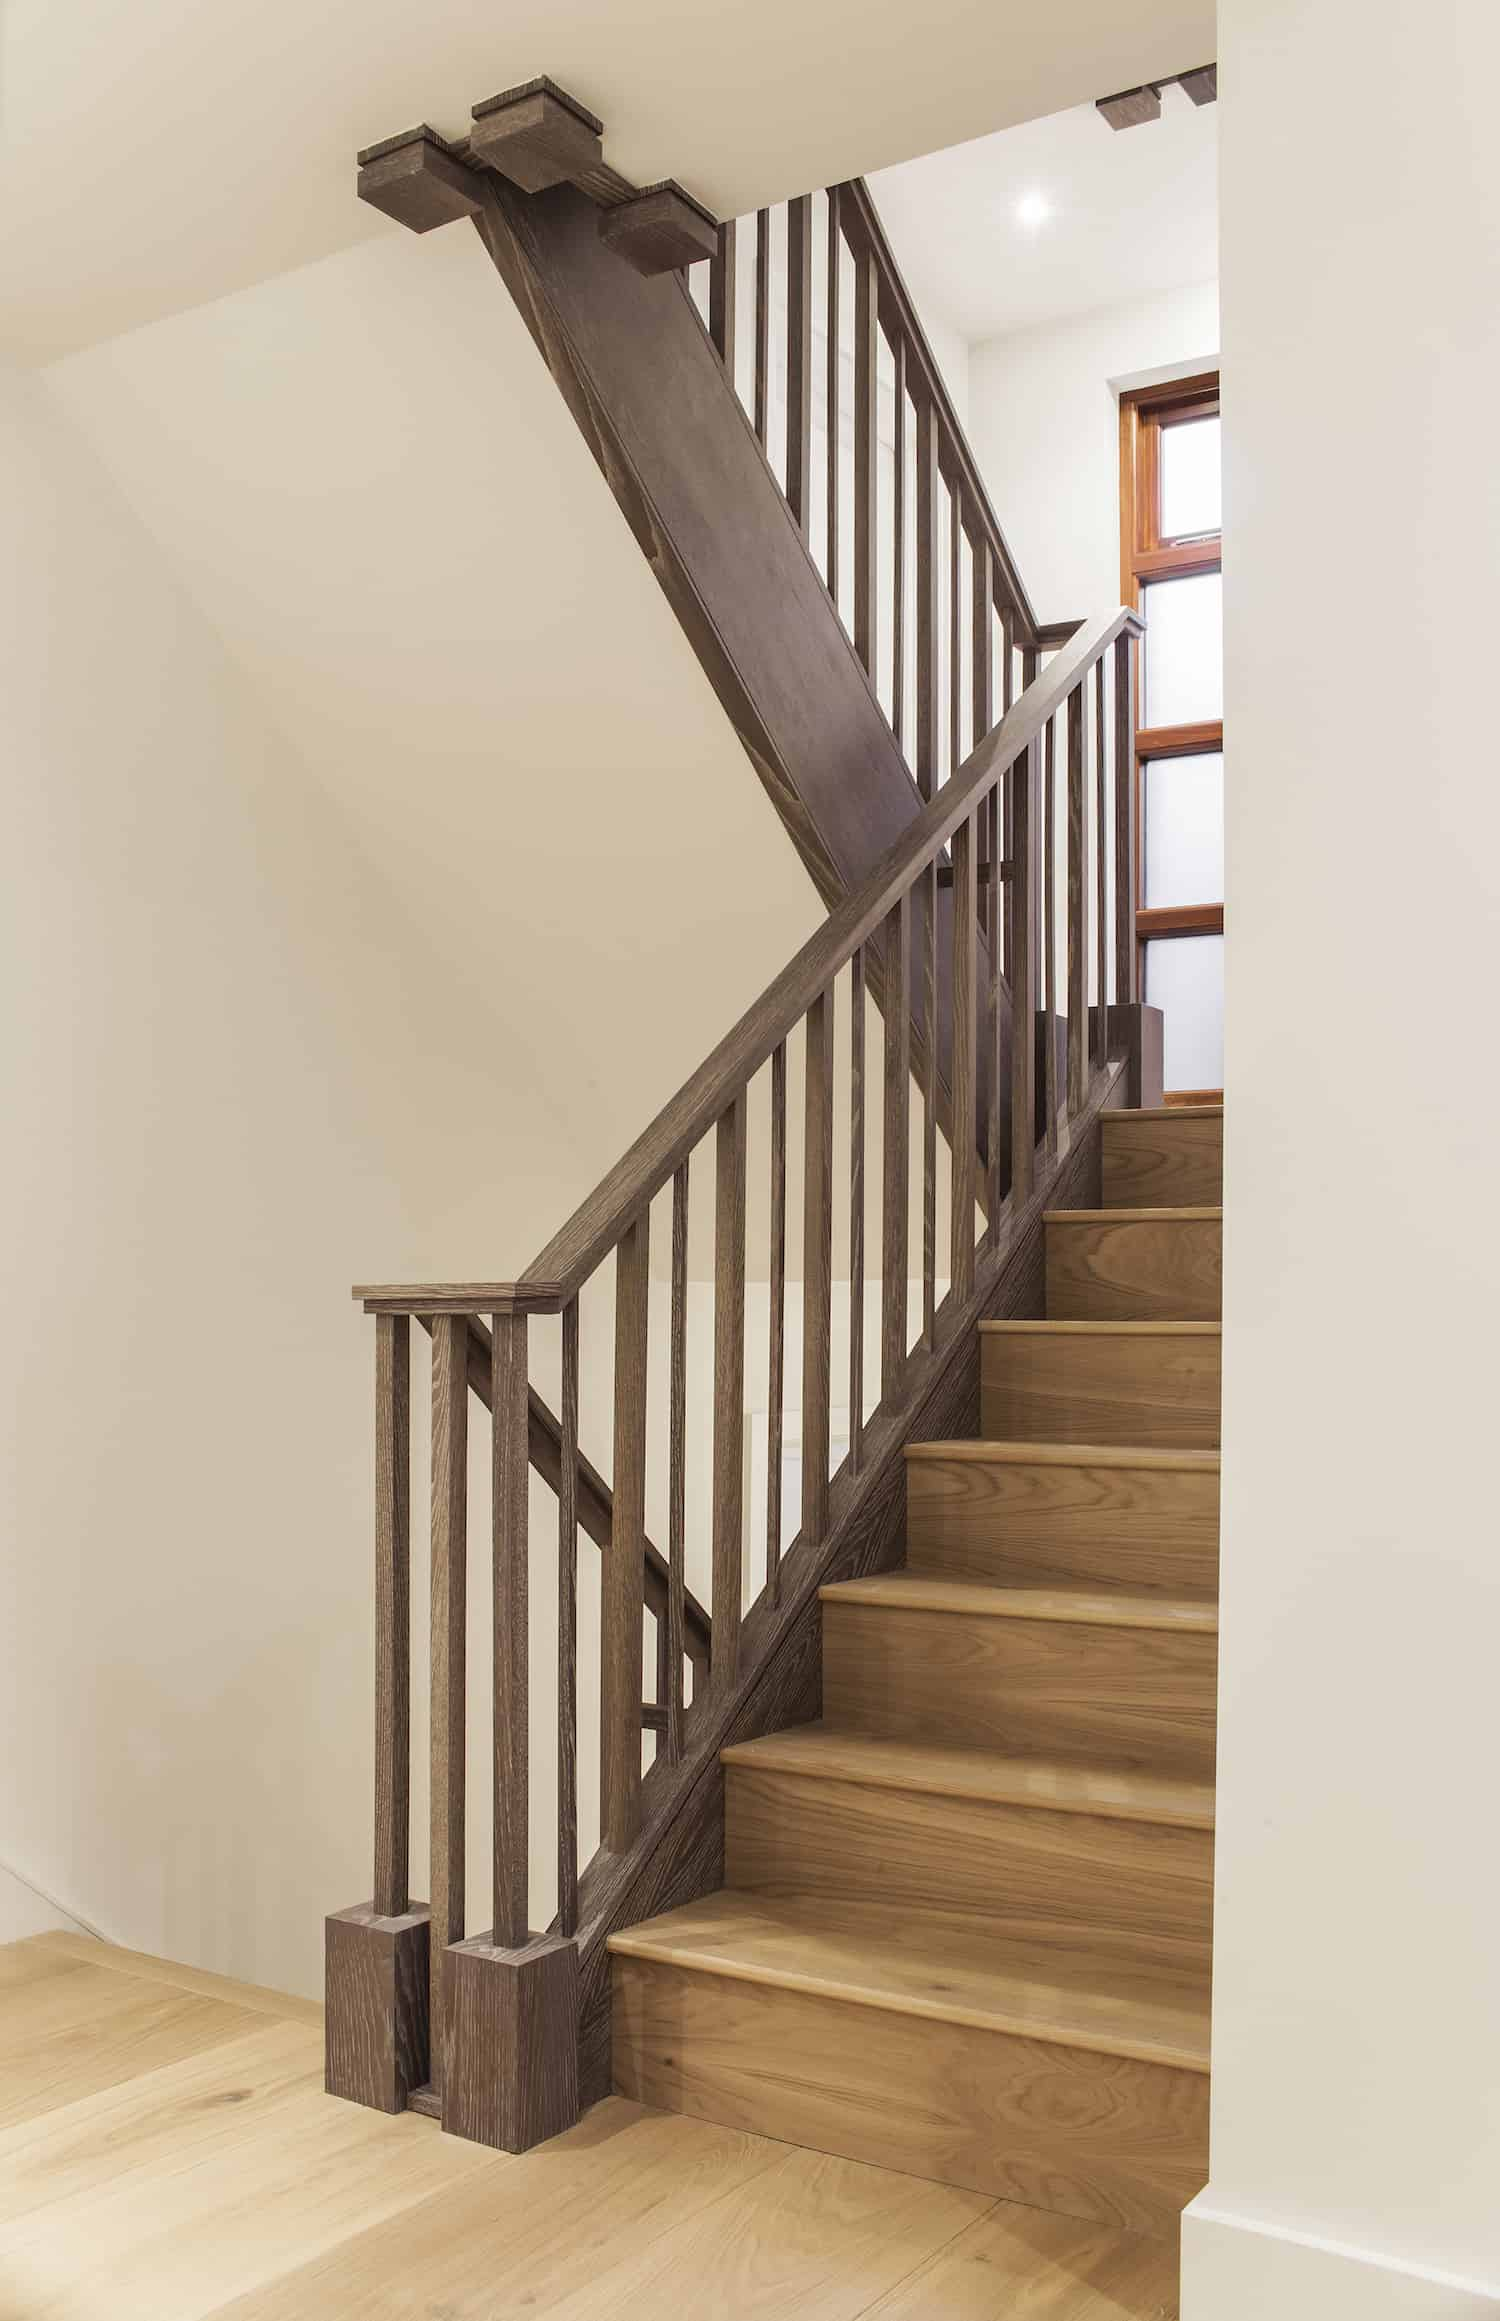 LLI Design incorporated the same staircase styling throughout all 5 floors in this townhouse.